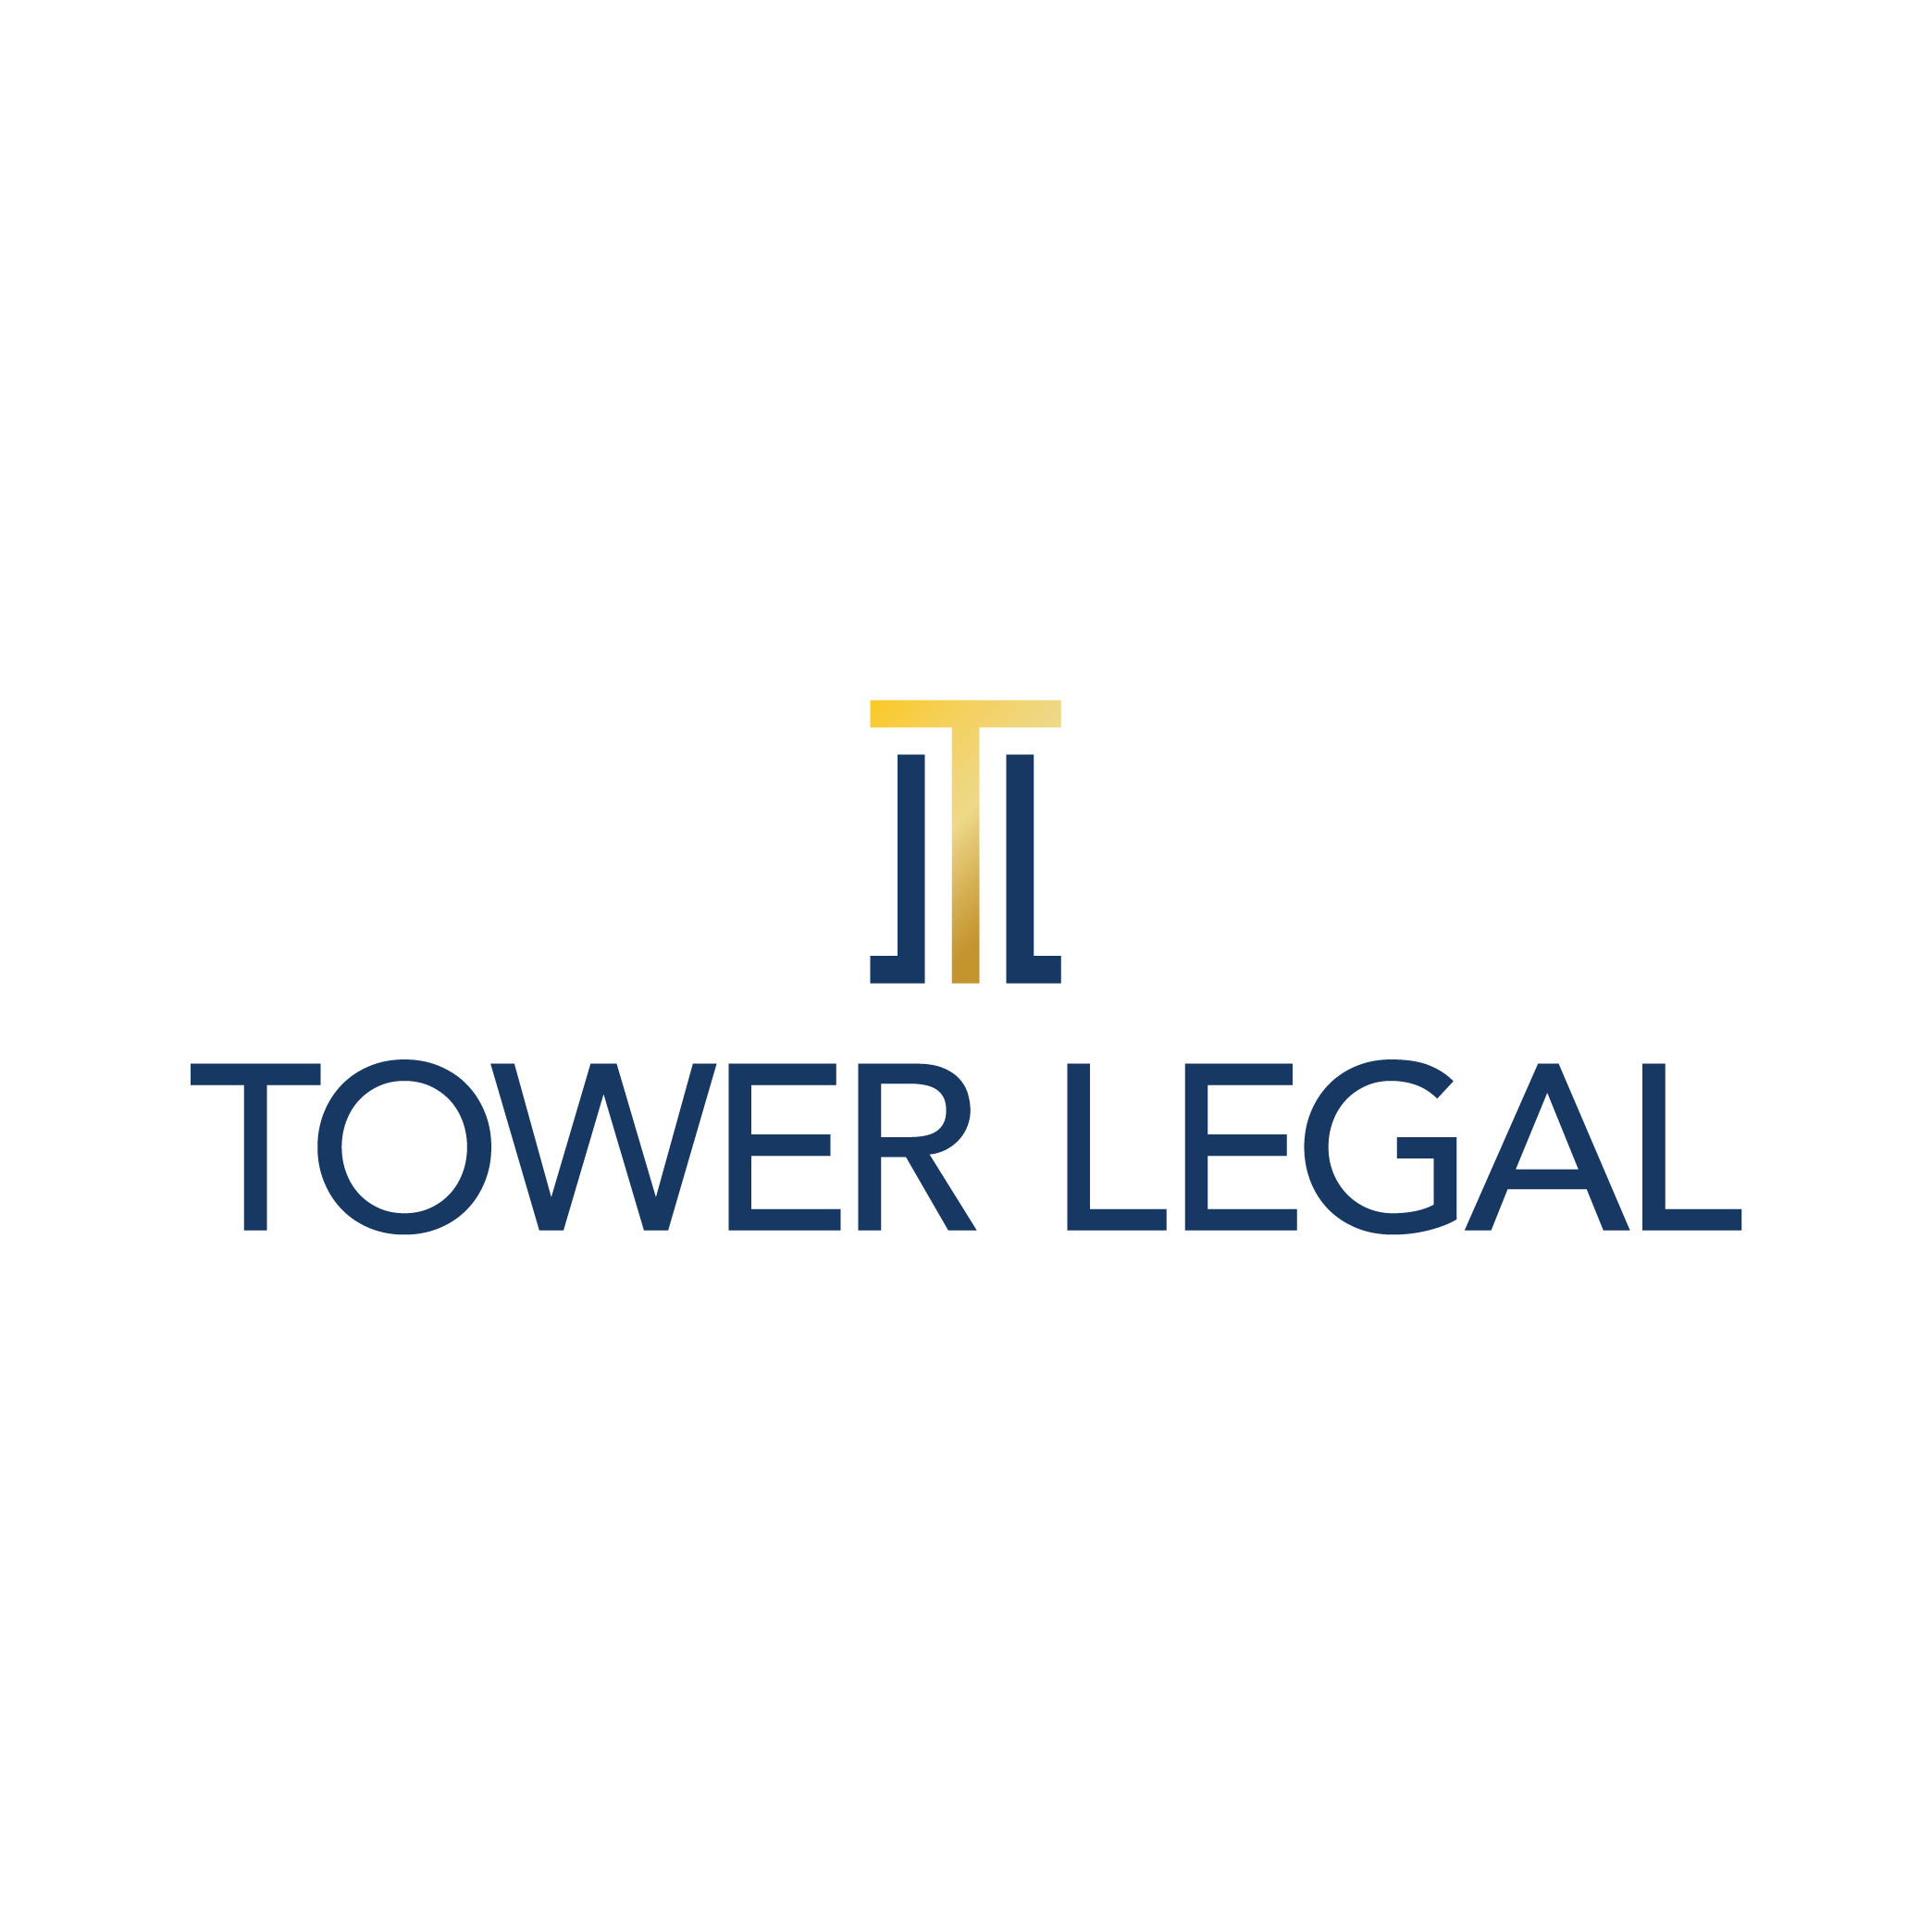 Tower Legal